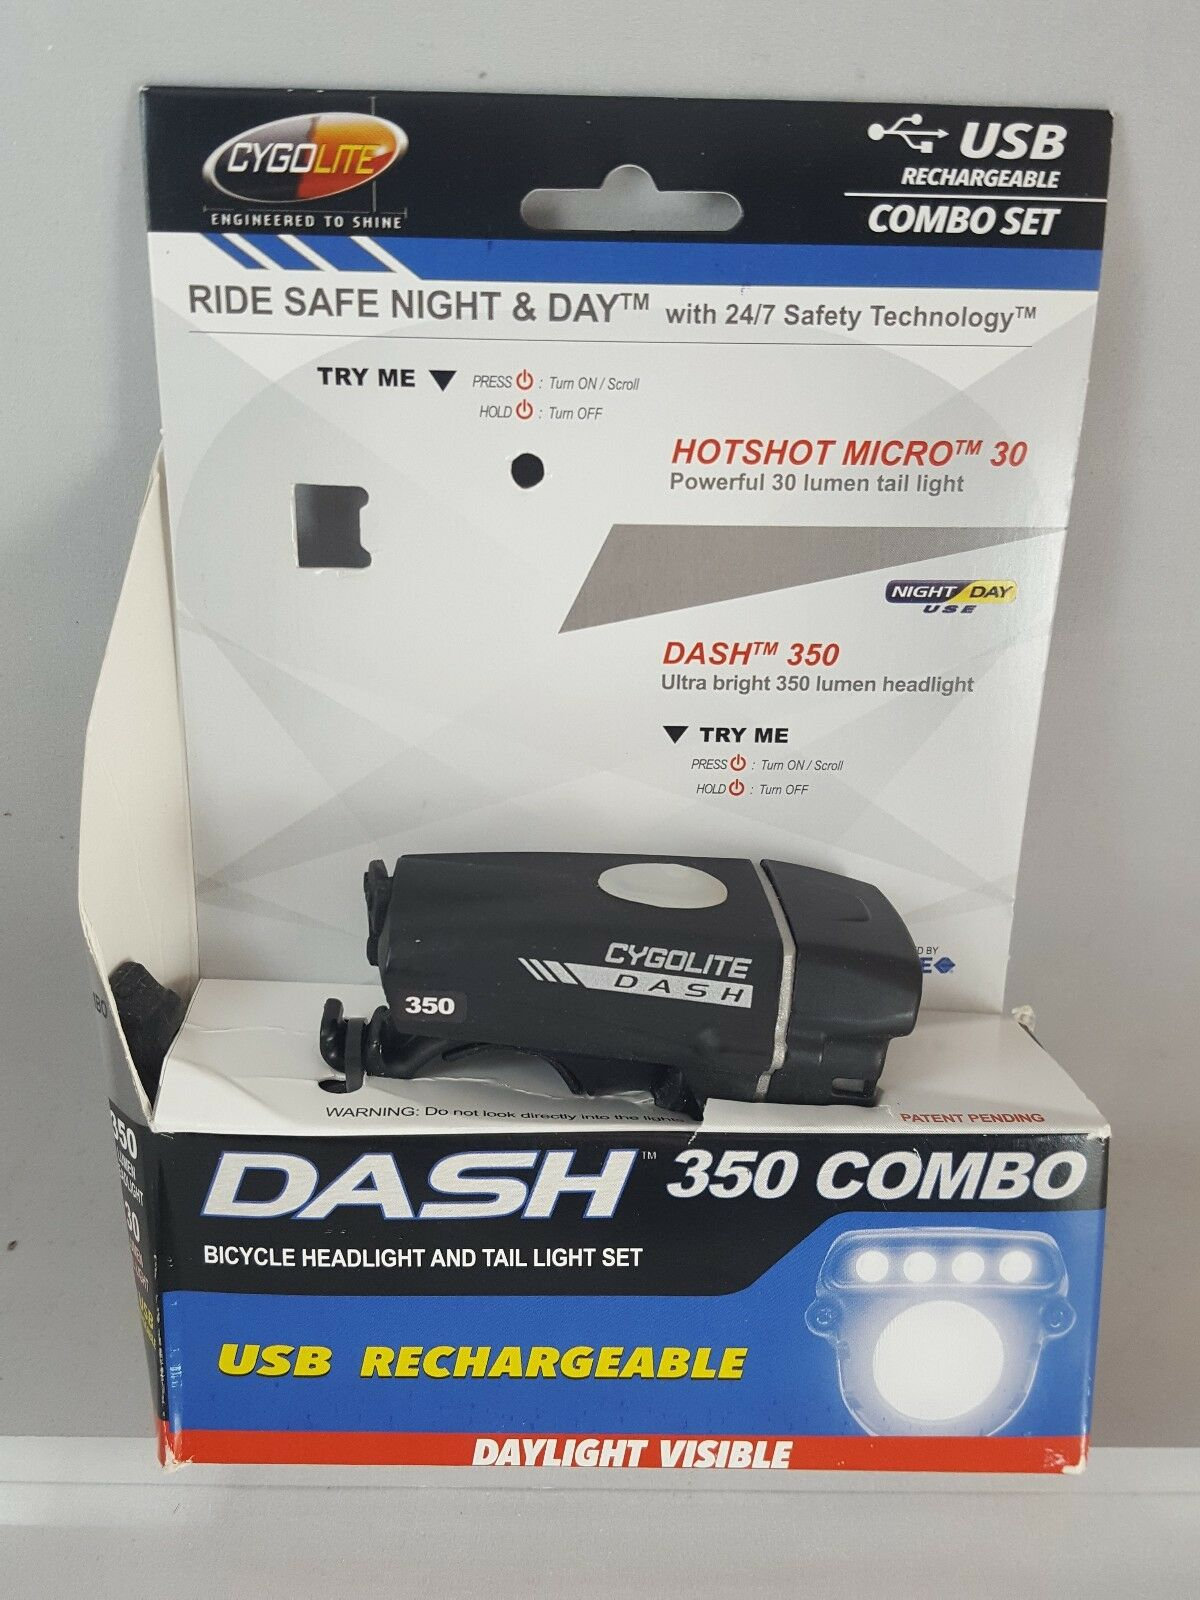 Cygolite Dash 350 Bicycle Headlight  And Mount Rechargeable Front Light ONLY  discount sales